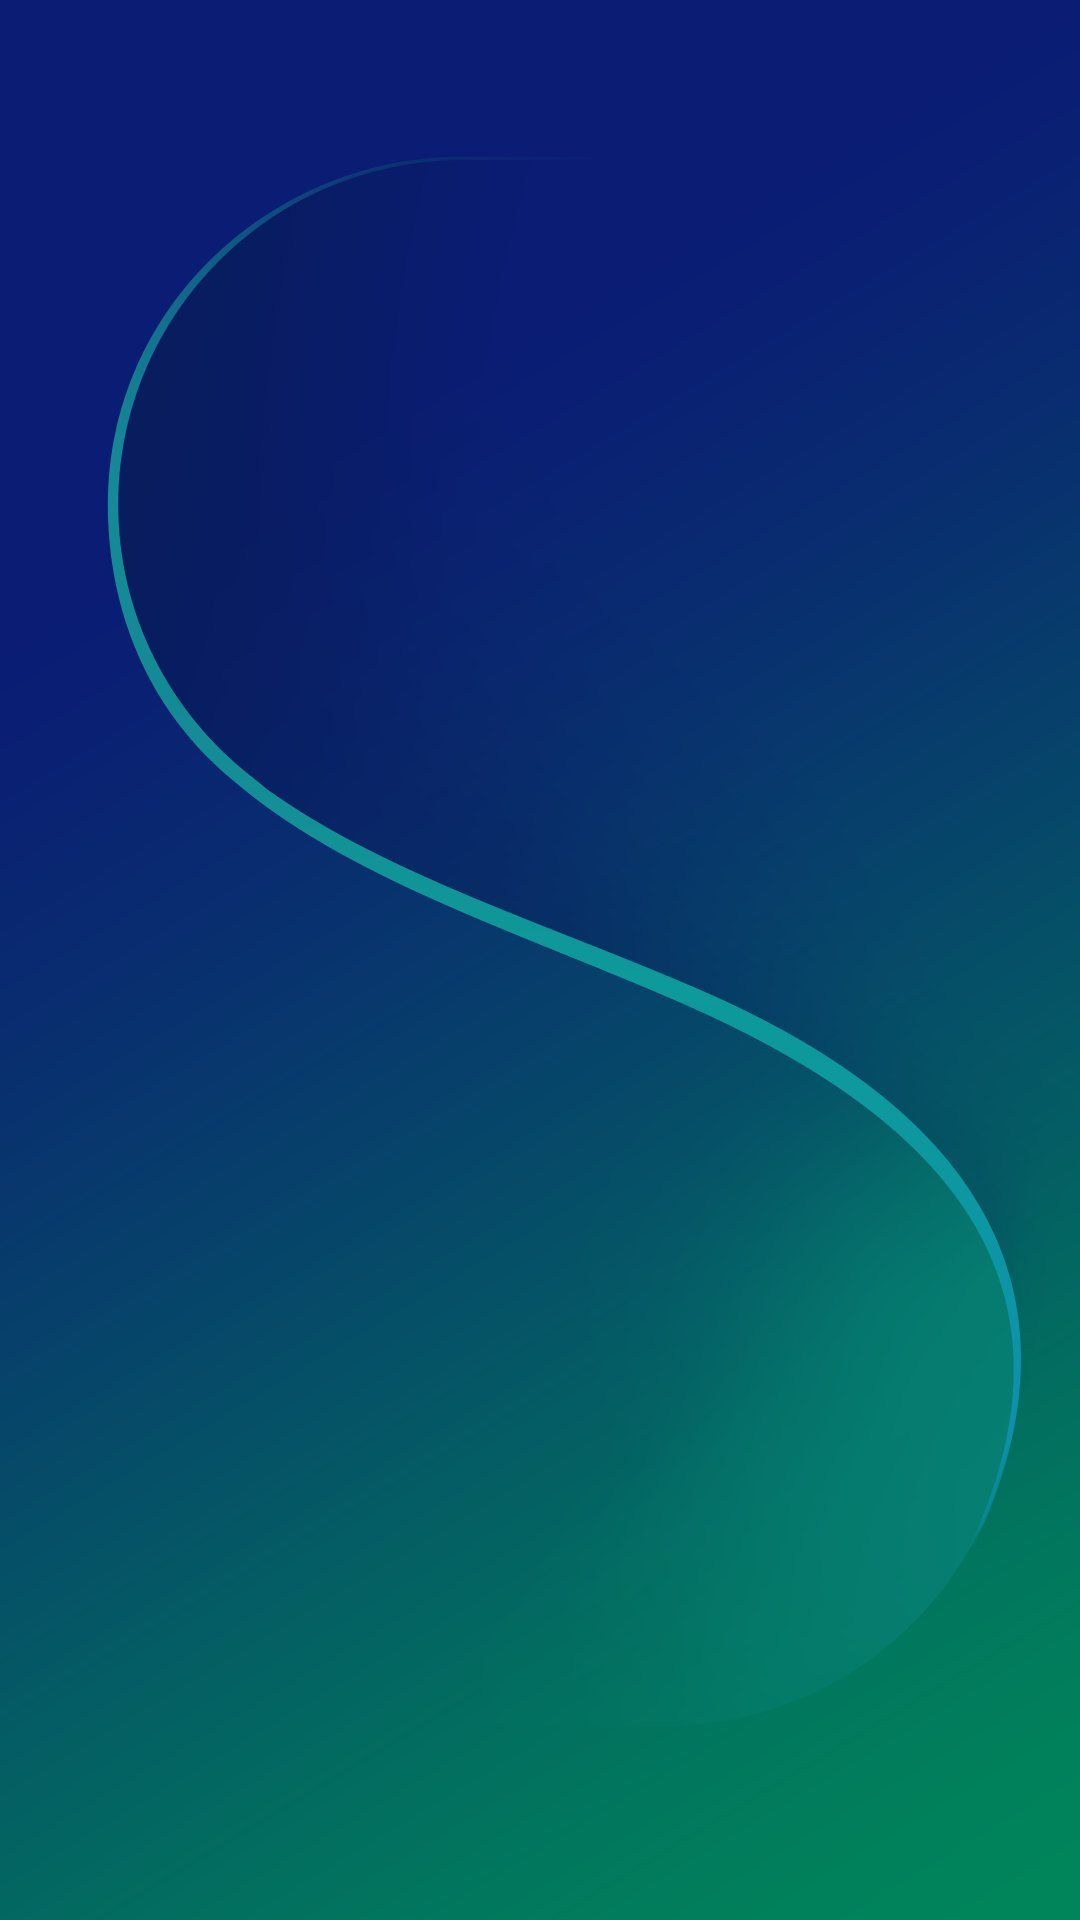 Simple Abstract Wallpapers Iphone Wallpaper Hd Wallpaper Android Android Wallpaper Samsung Wallpaper